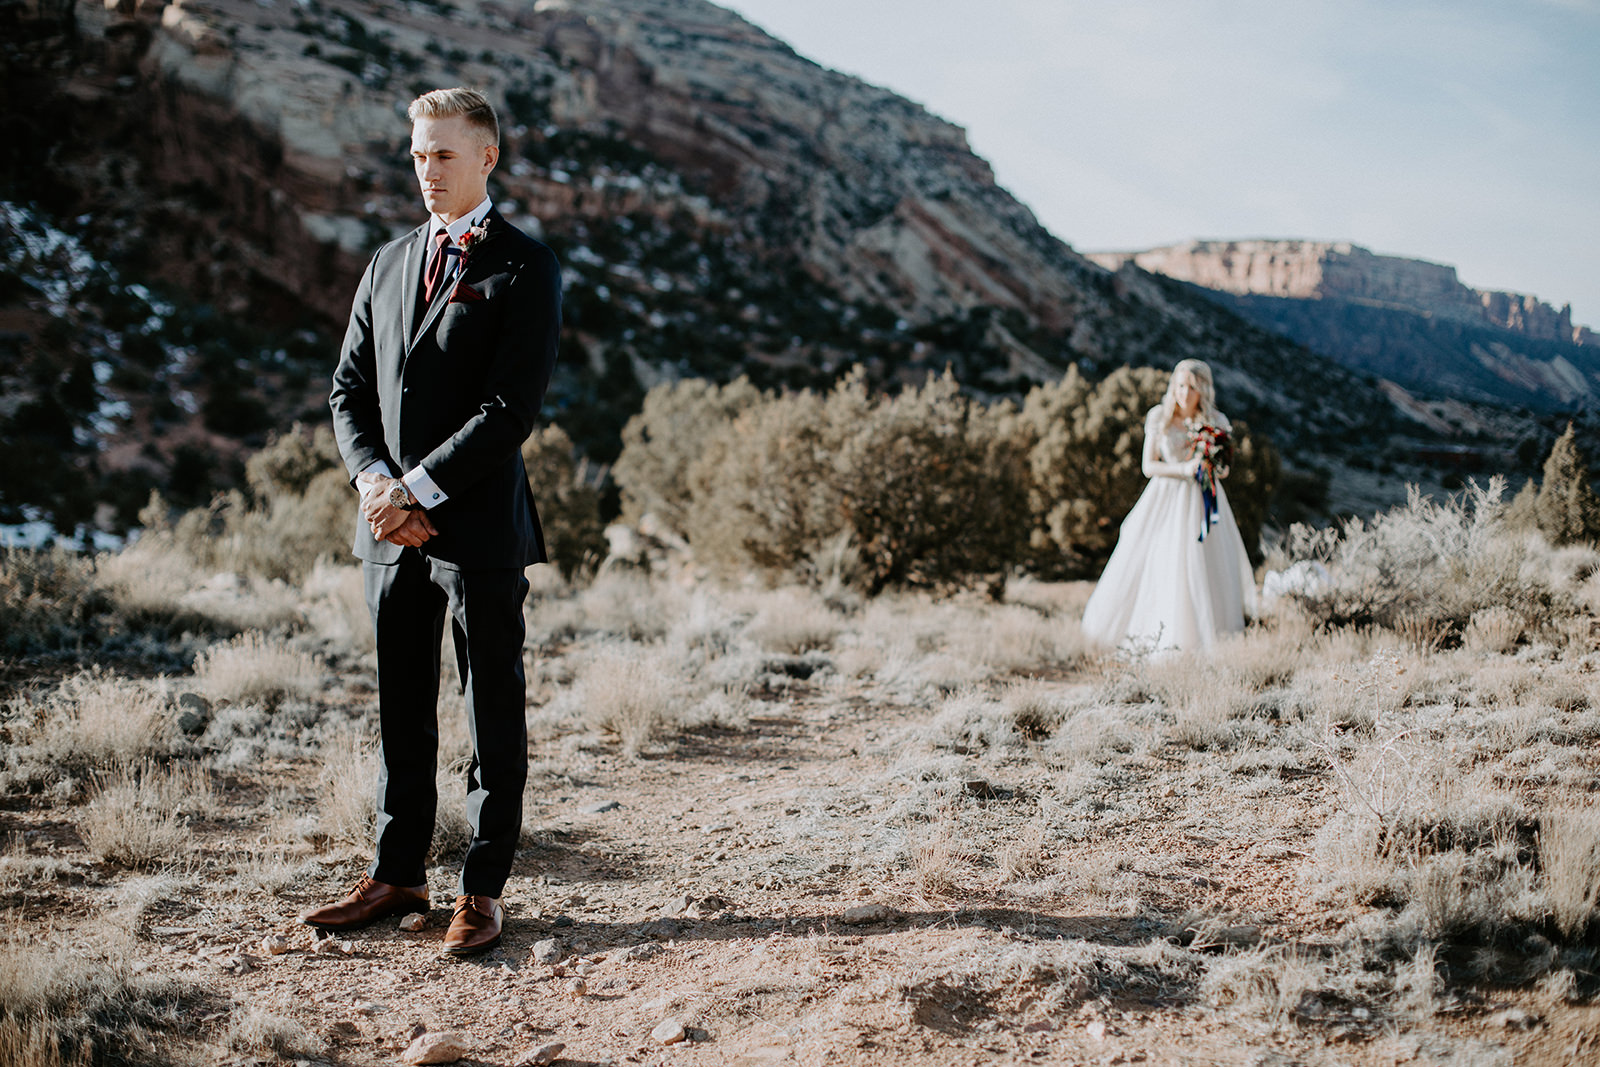 Bride coming up behind groom for first look in the desert of Colorado